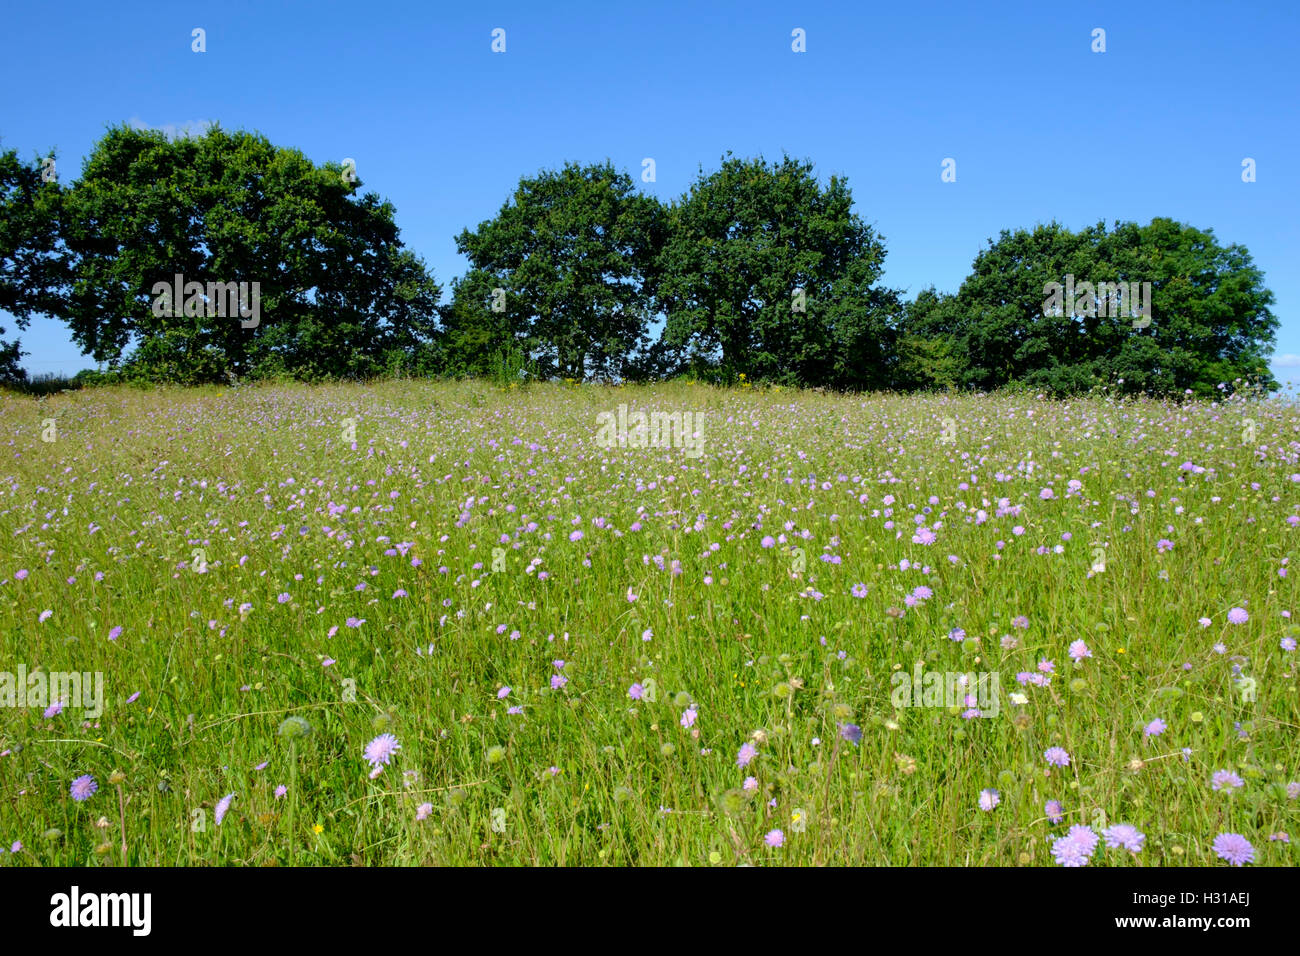 A British Summer meadow - Stock Image